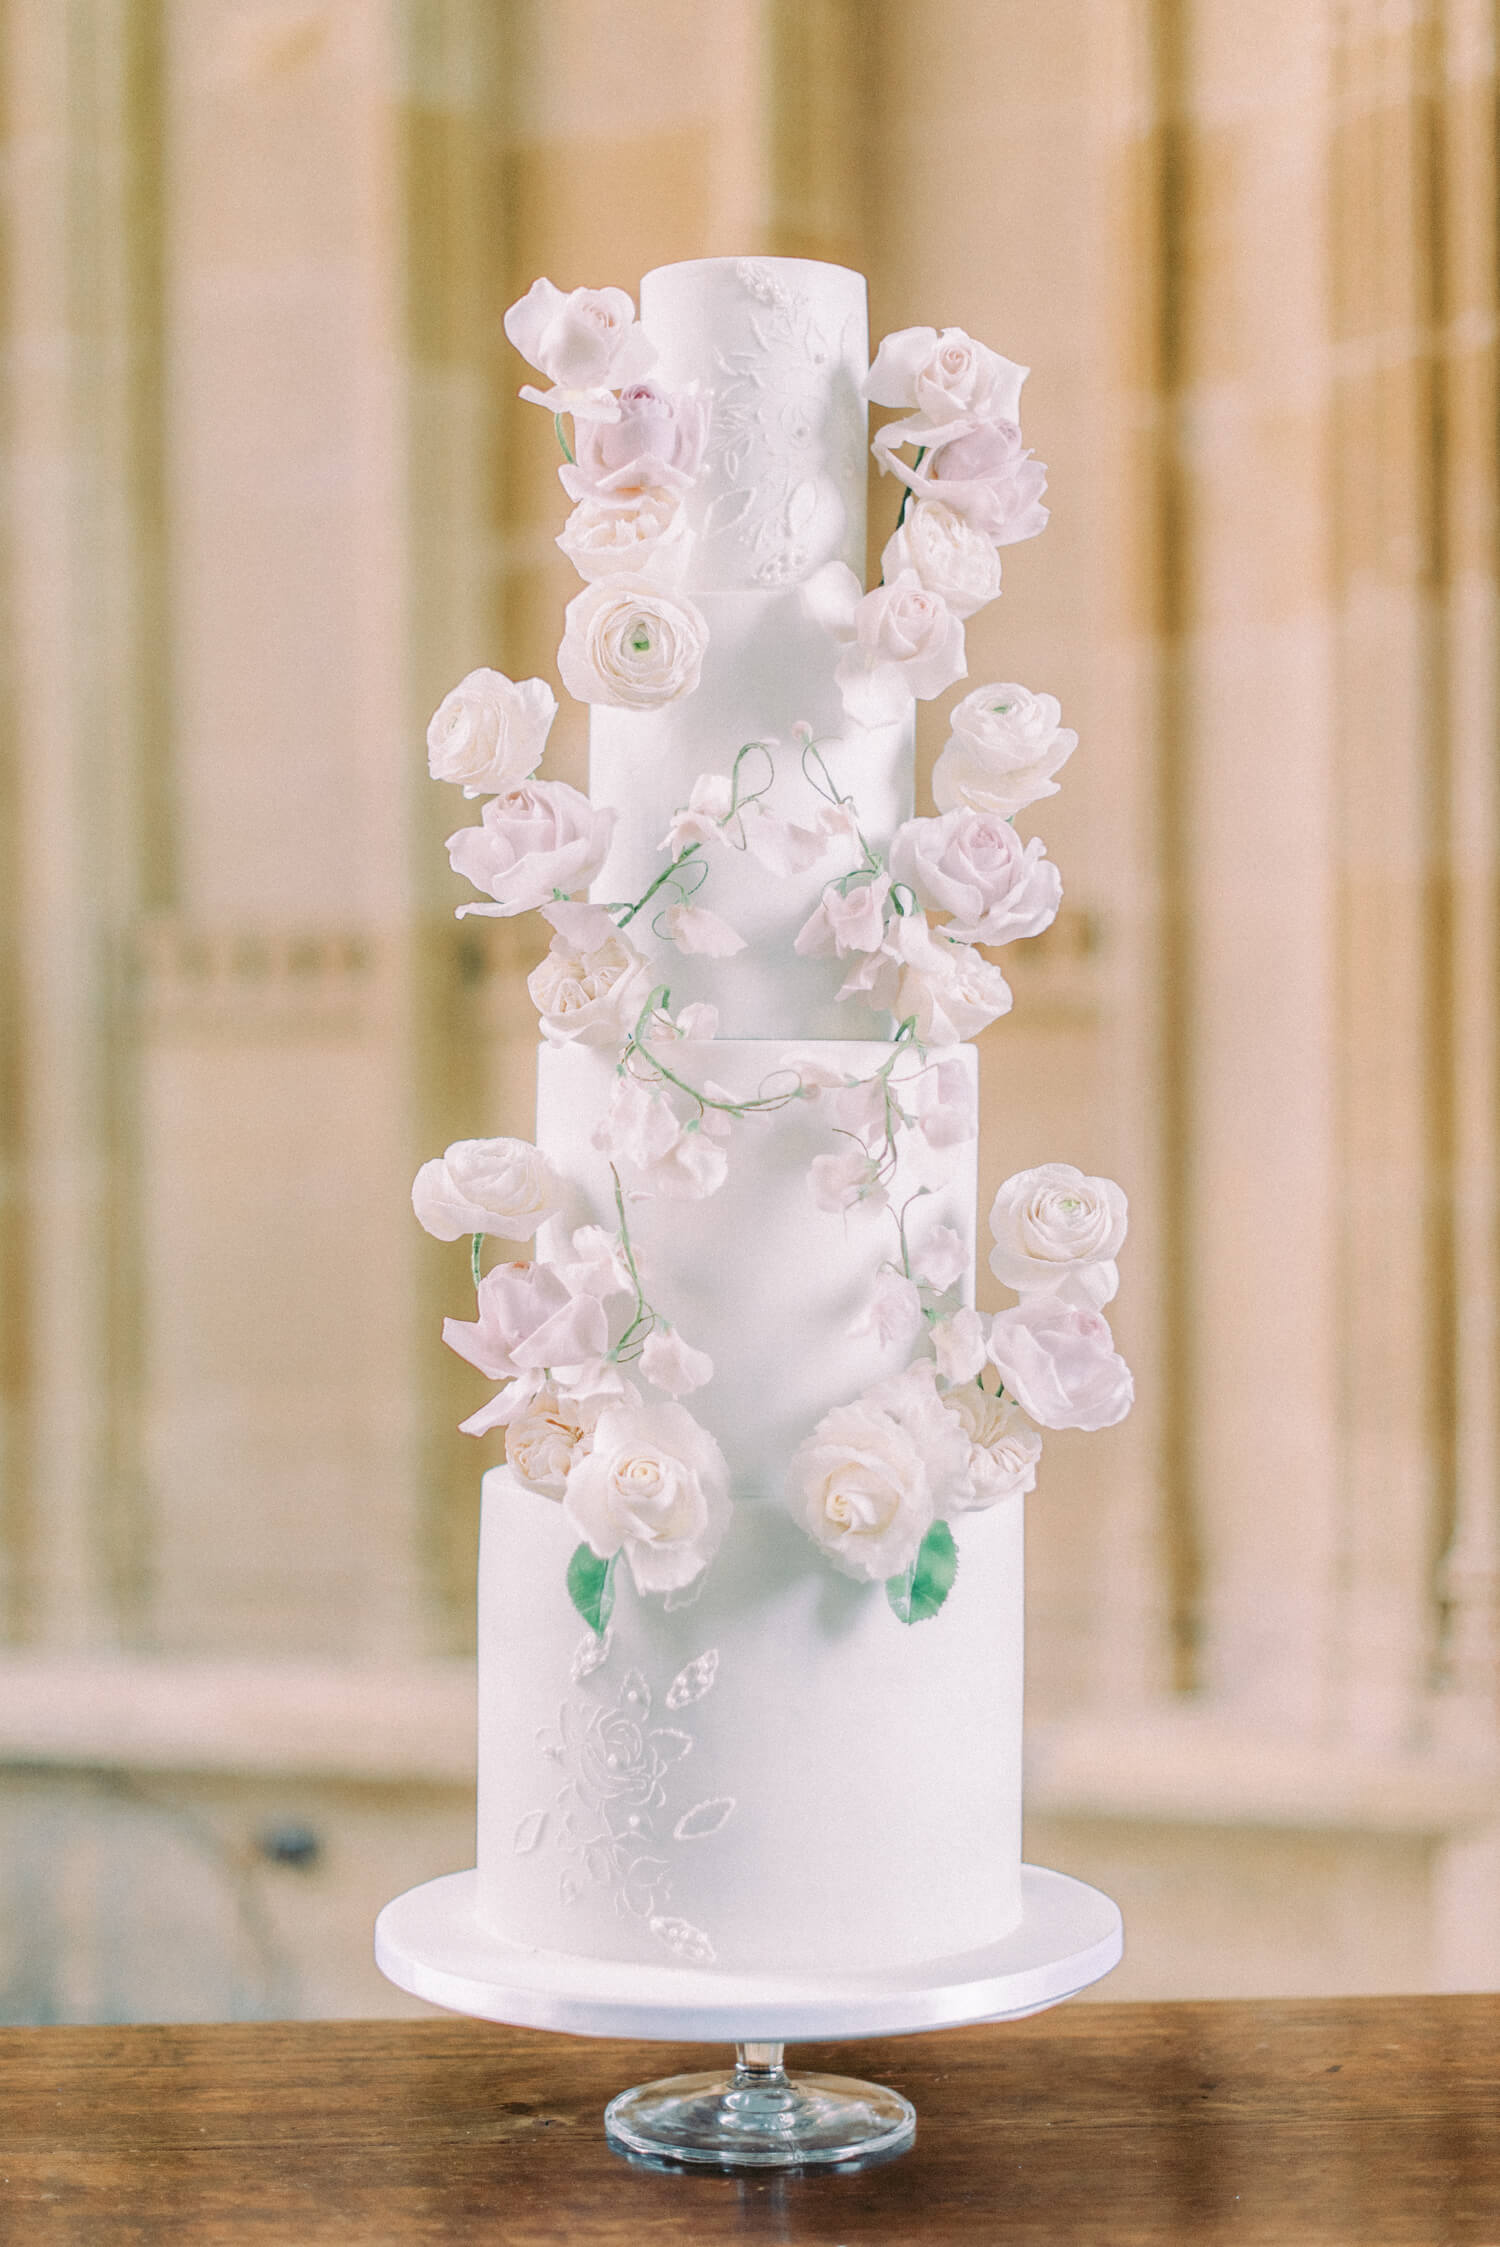 romantic wedding ideas - 4 tier luxury wedding fondant with sugar flowers pink roses, white and peach ranunculus, blush sweet peas.  designed by MonAnnie Cakes, photo by Cristina Ilao Photography